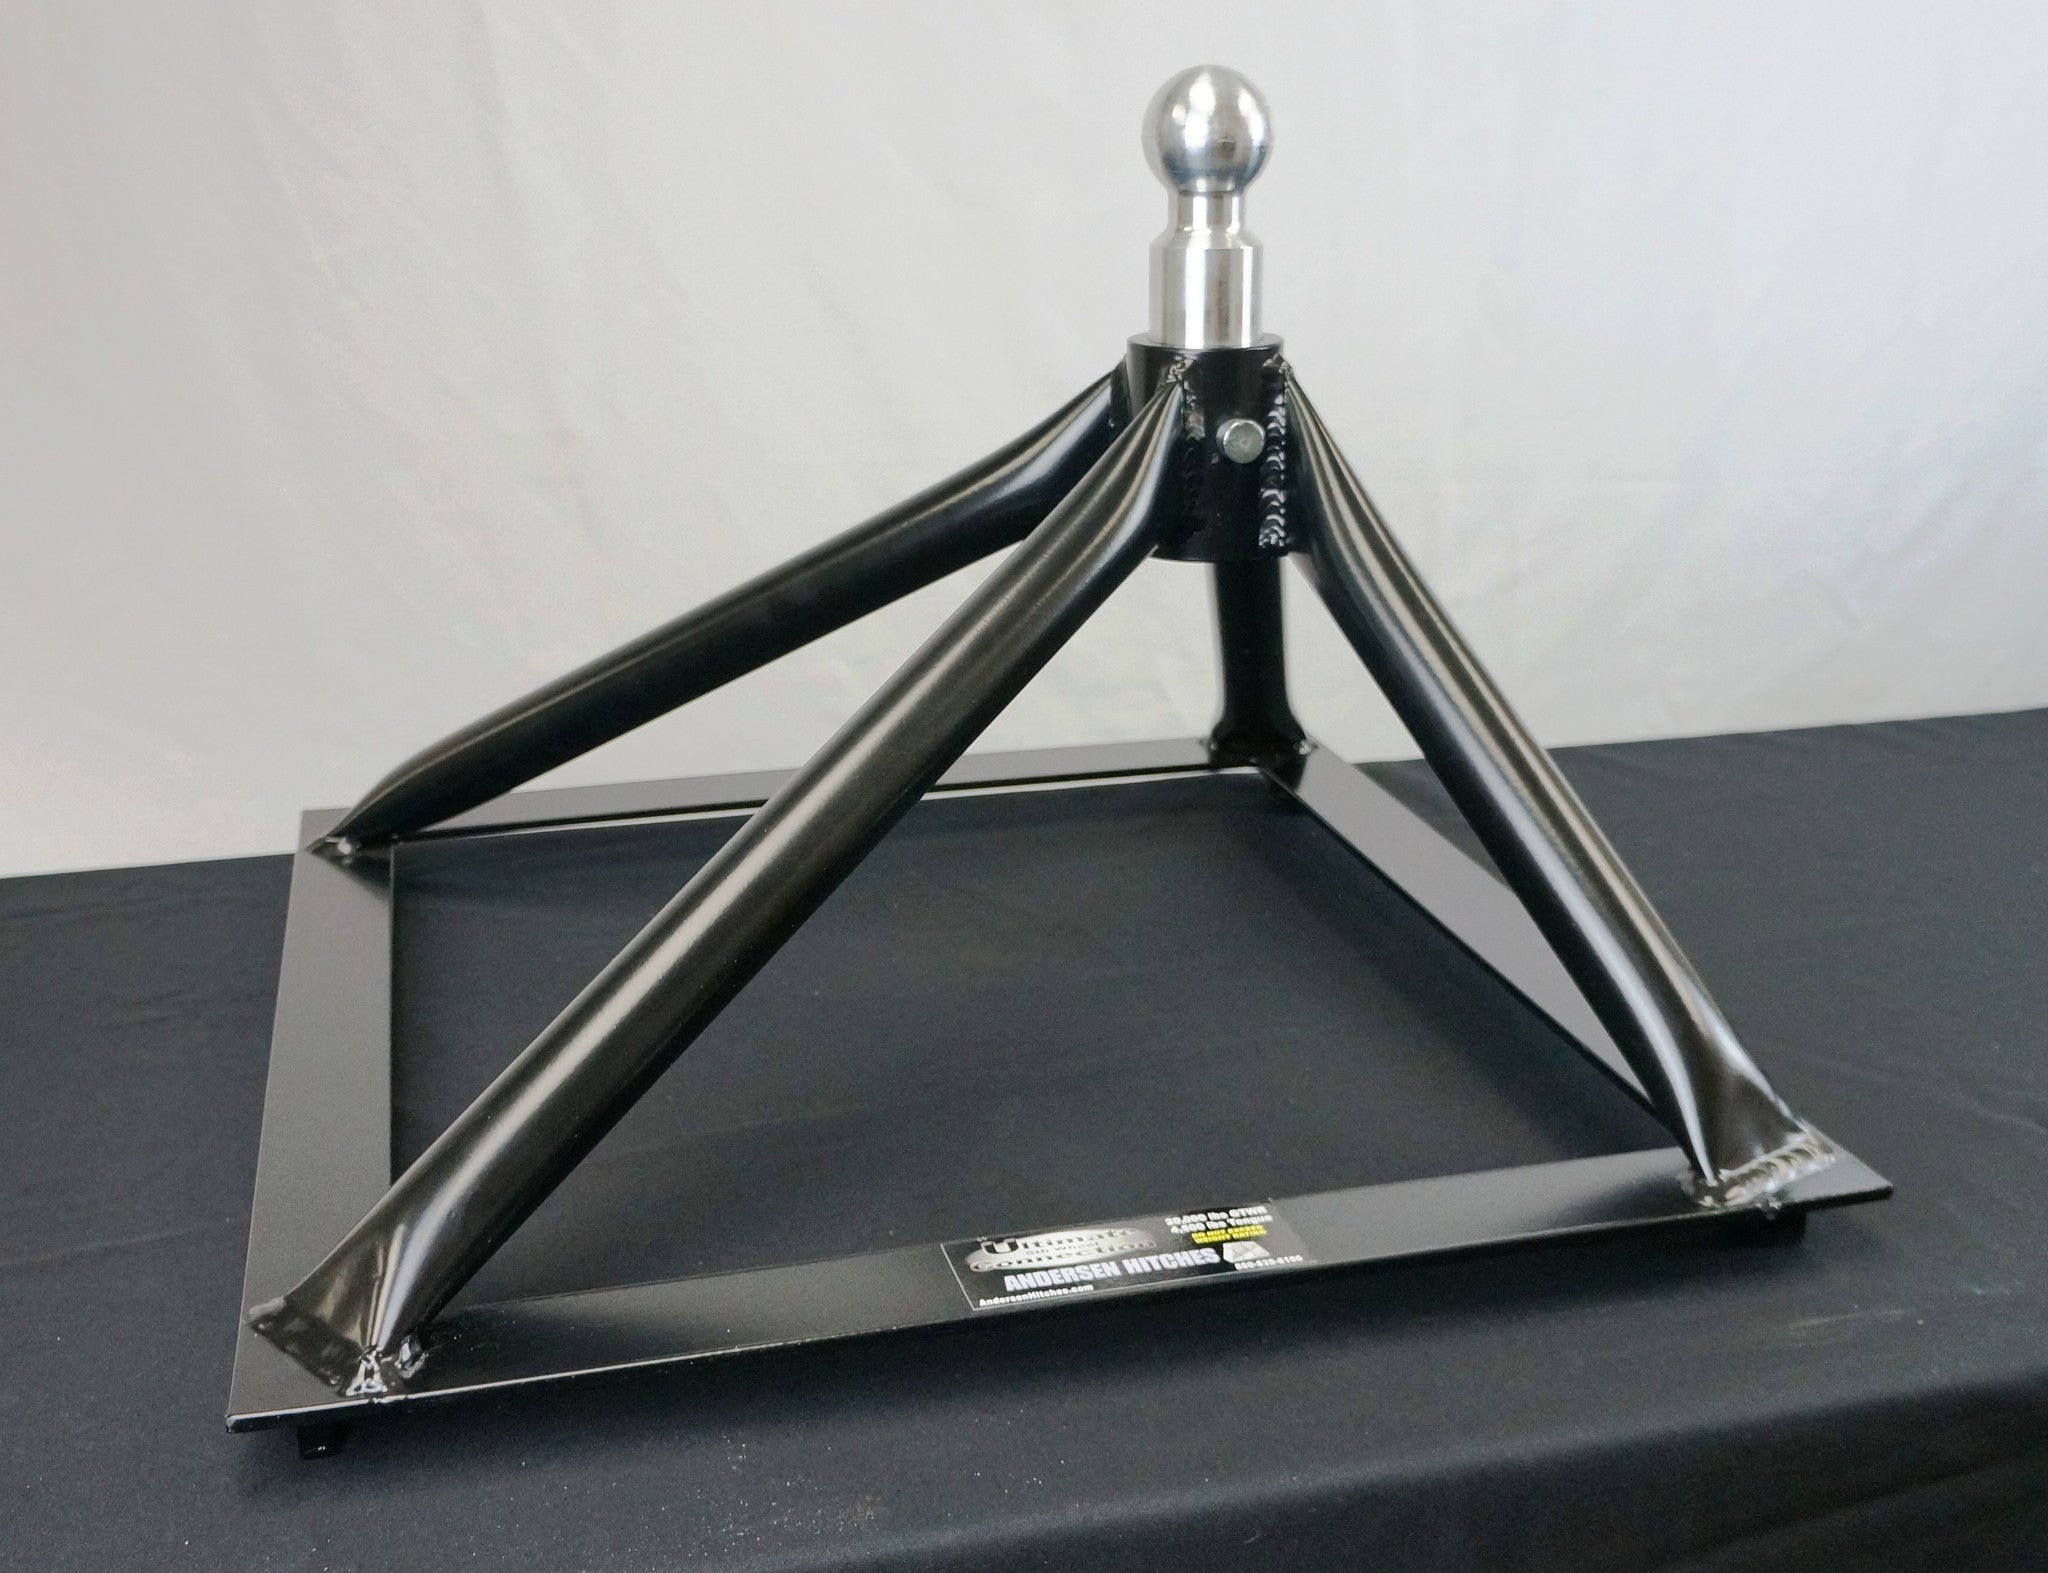 Ultimate 5th Wheel Connection Rail Mount Steel ly 40 lbs